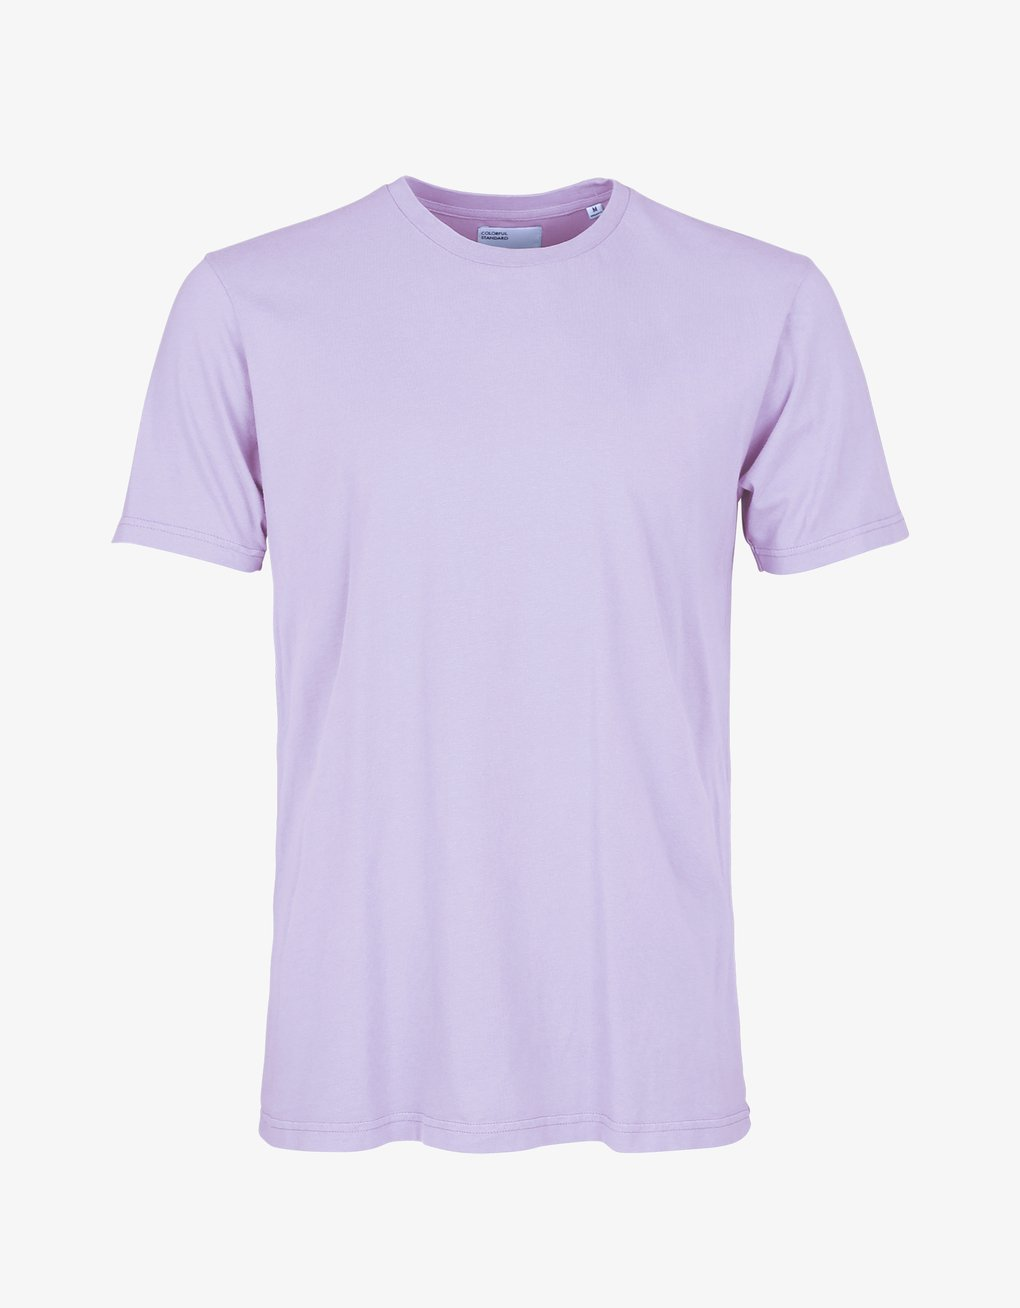 COLORFUL STANDARD | Classic Organic T-shirt | Soft Lavender - LONDØNWORKS